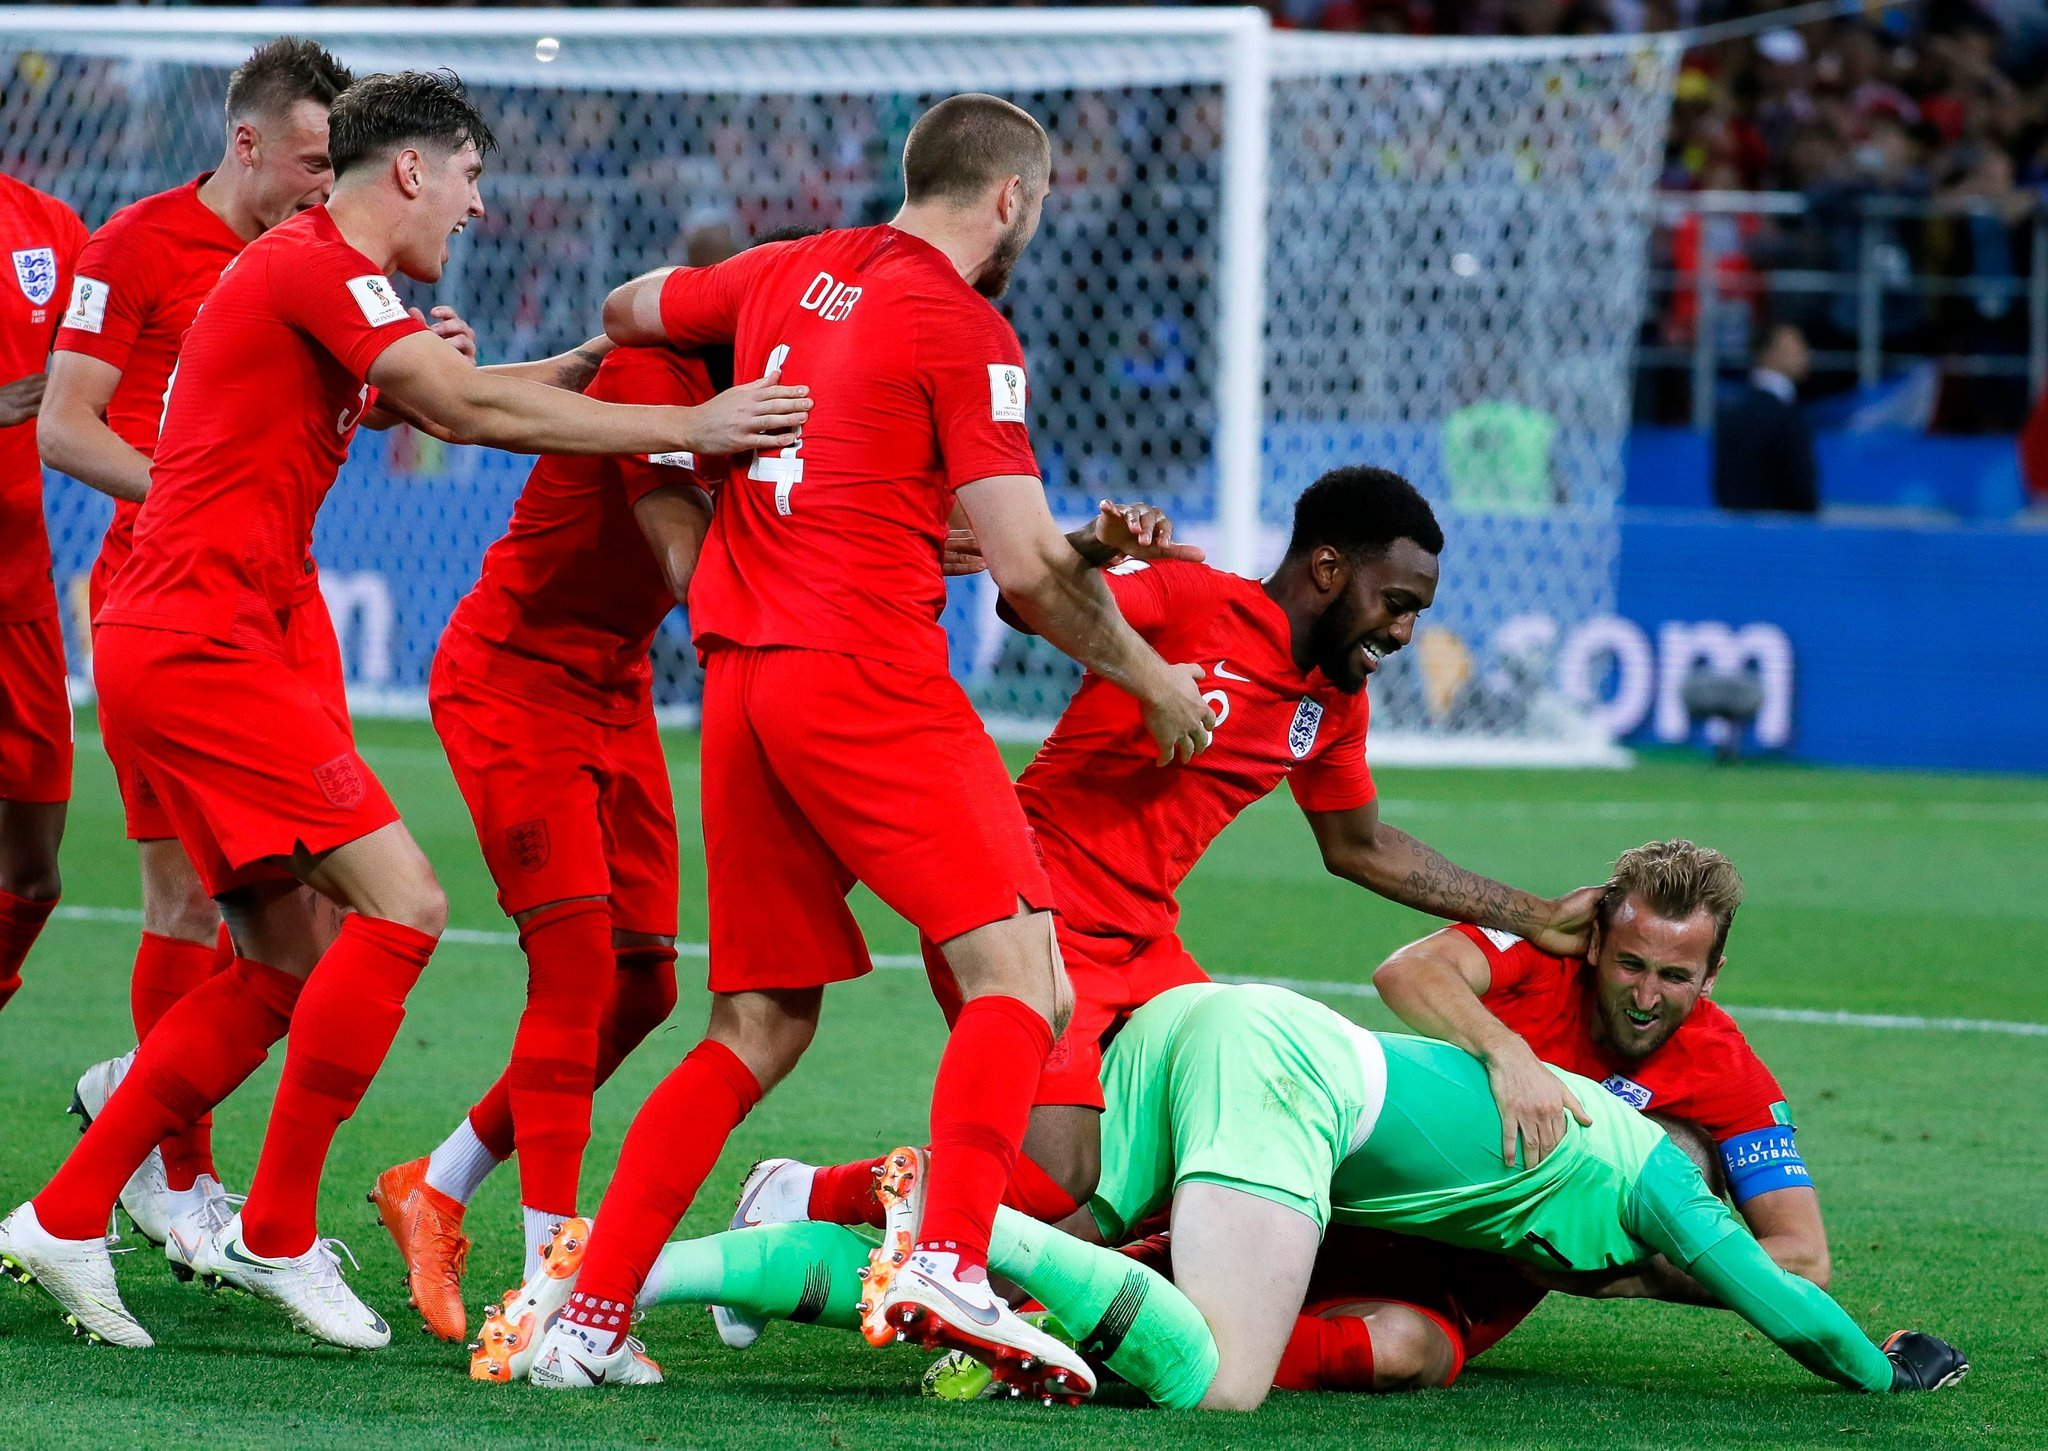 England overcomes themselves to beat Colombia on penalties